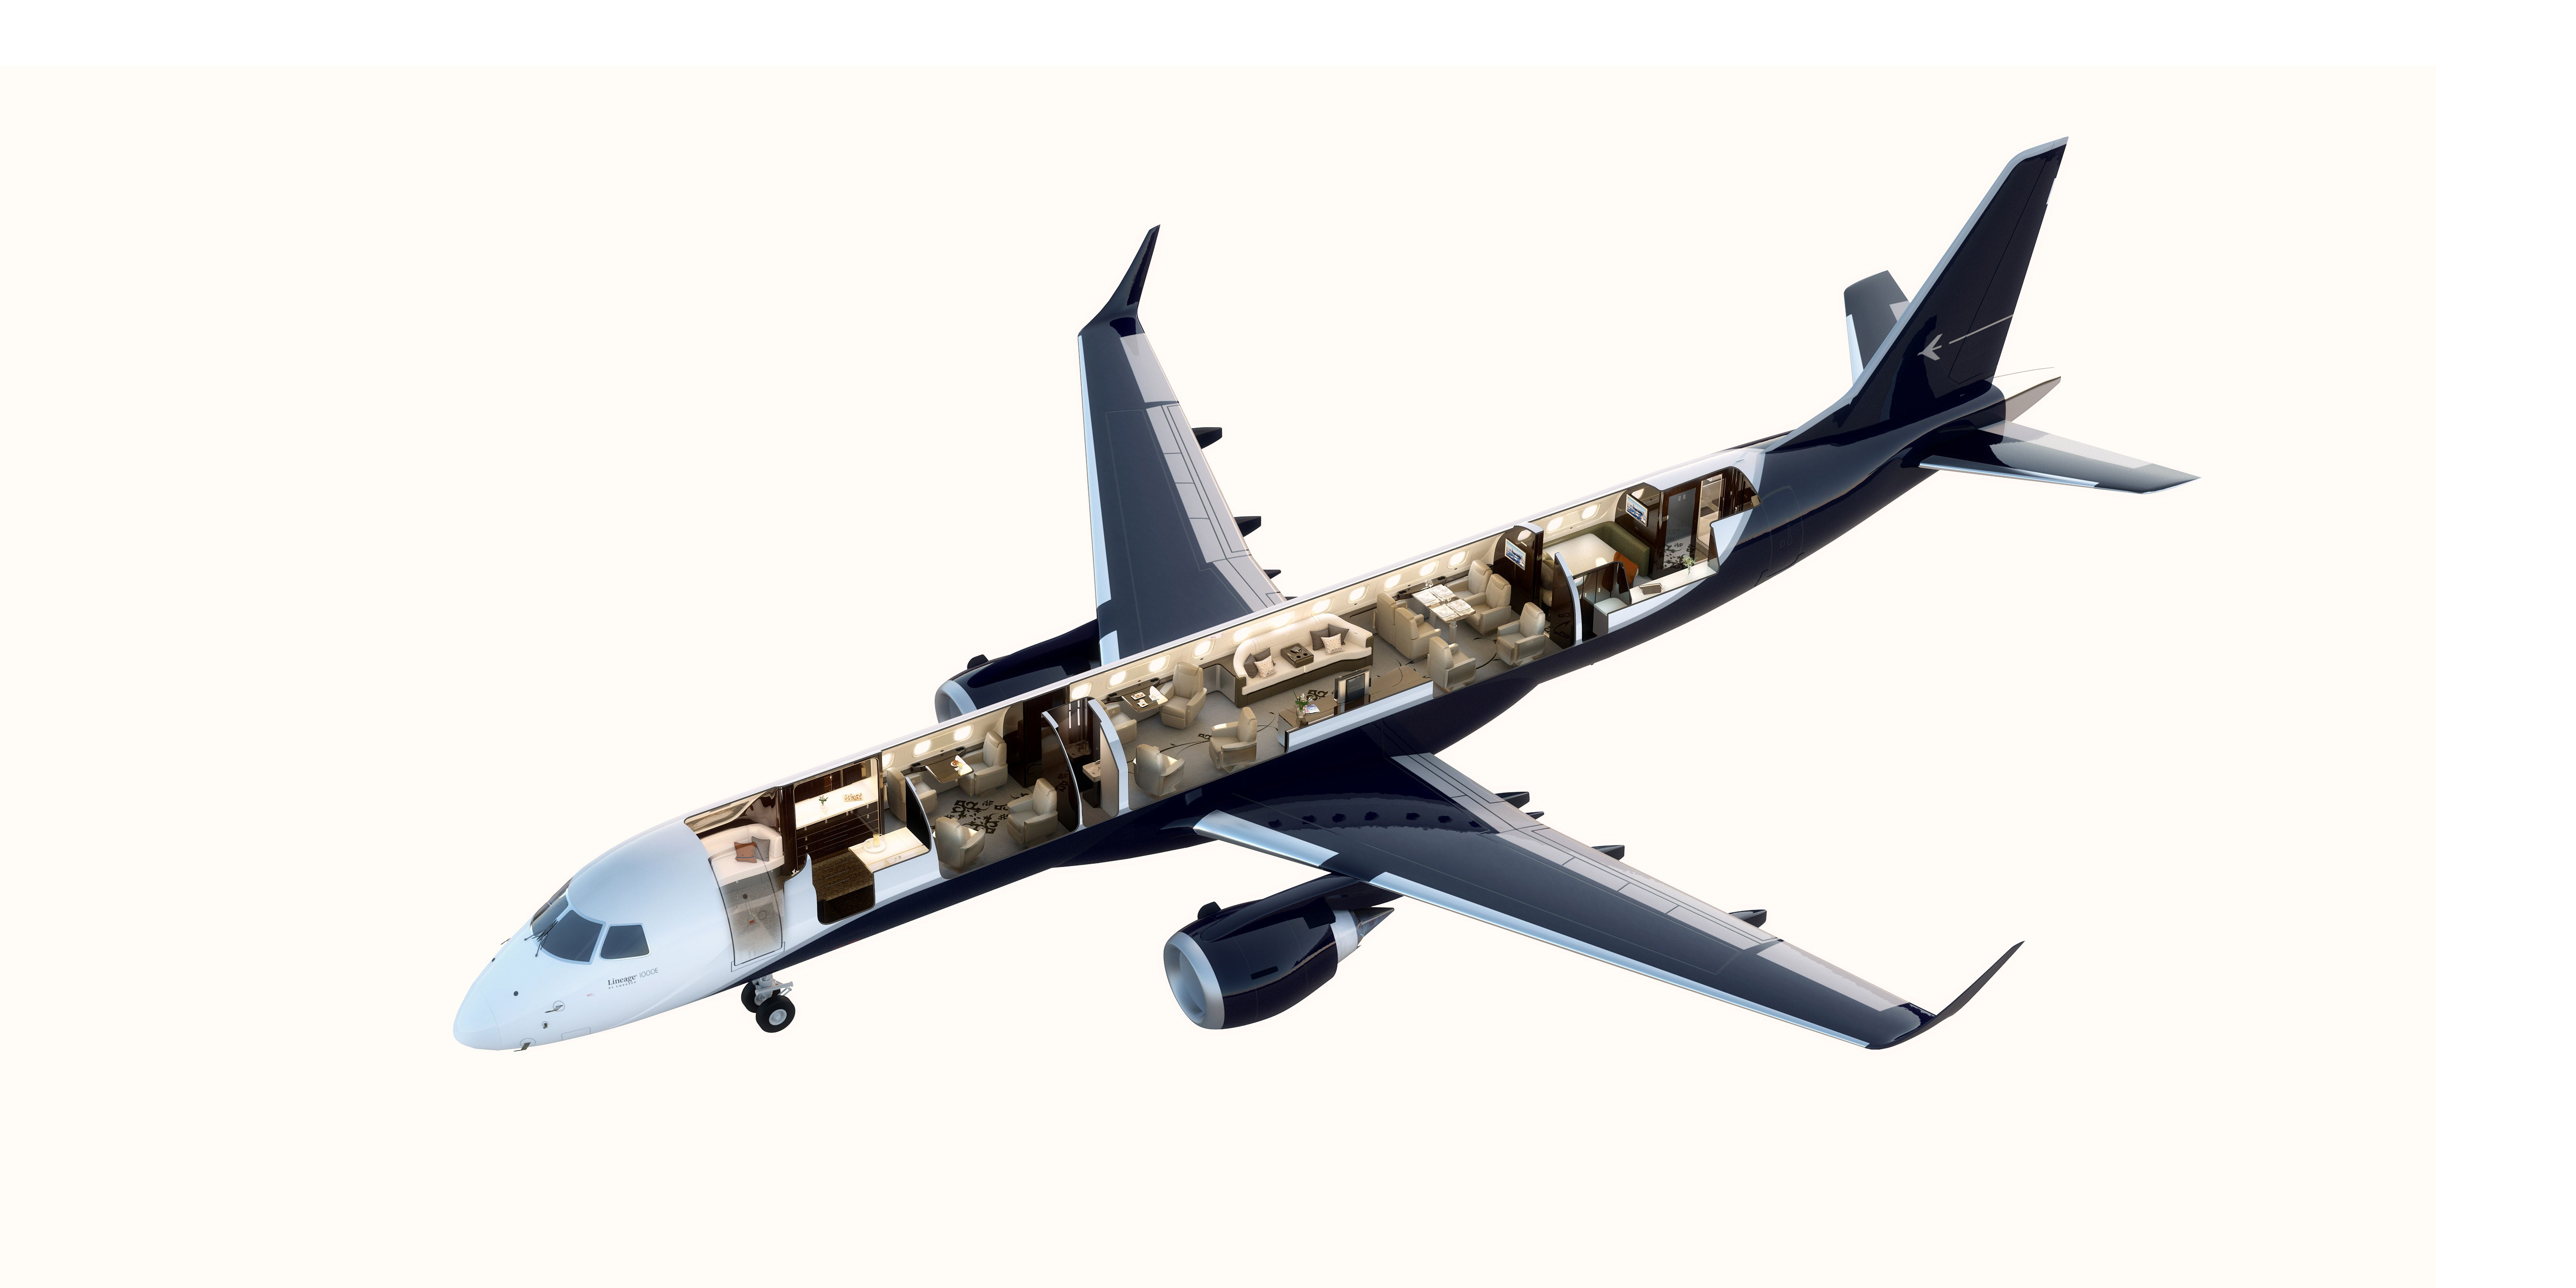 Private jet interior furnished like a vintage train aviation - Ever Wonder What Goes Inside A 53 Million Private Jet